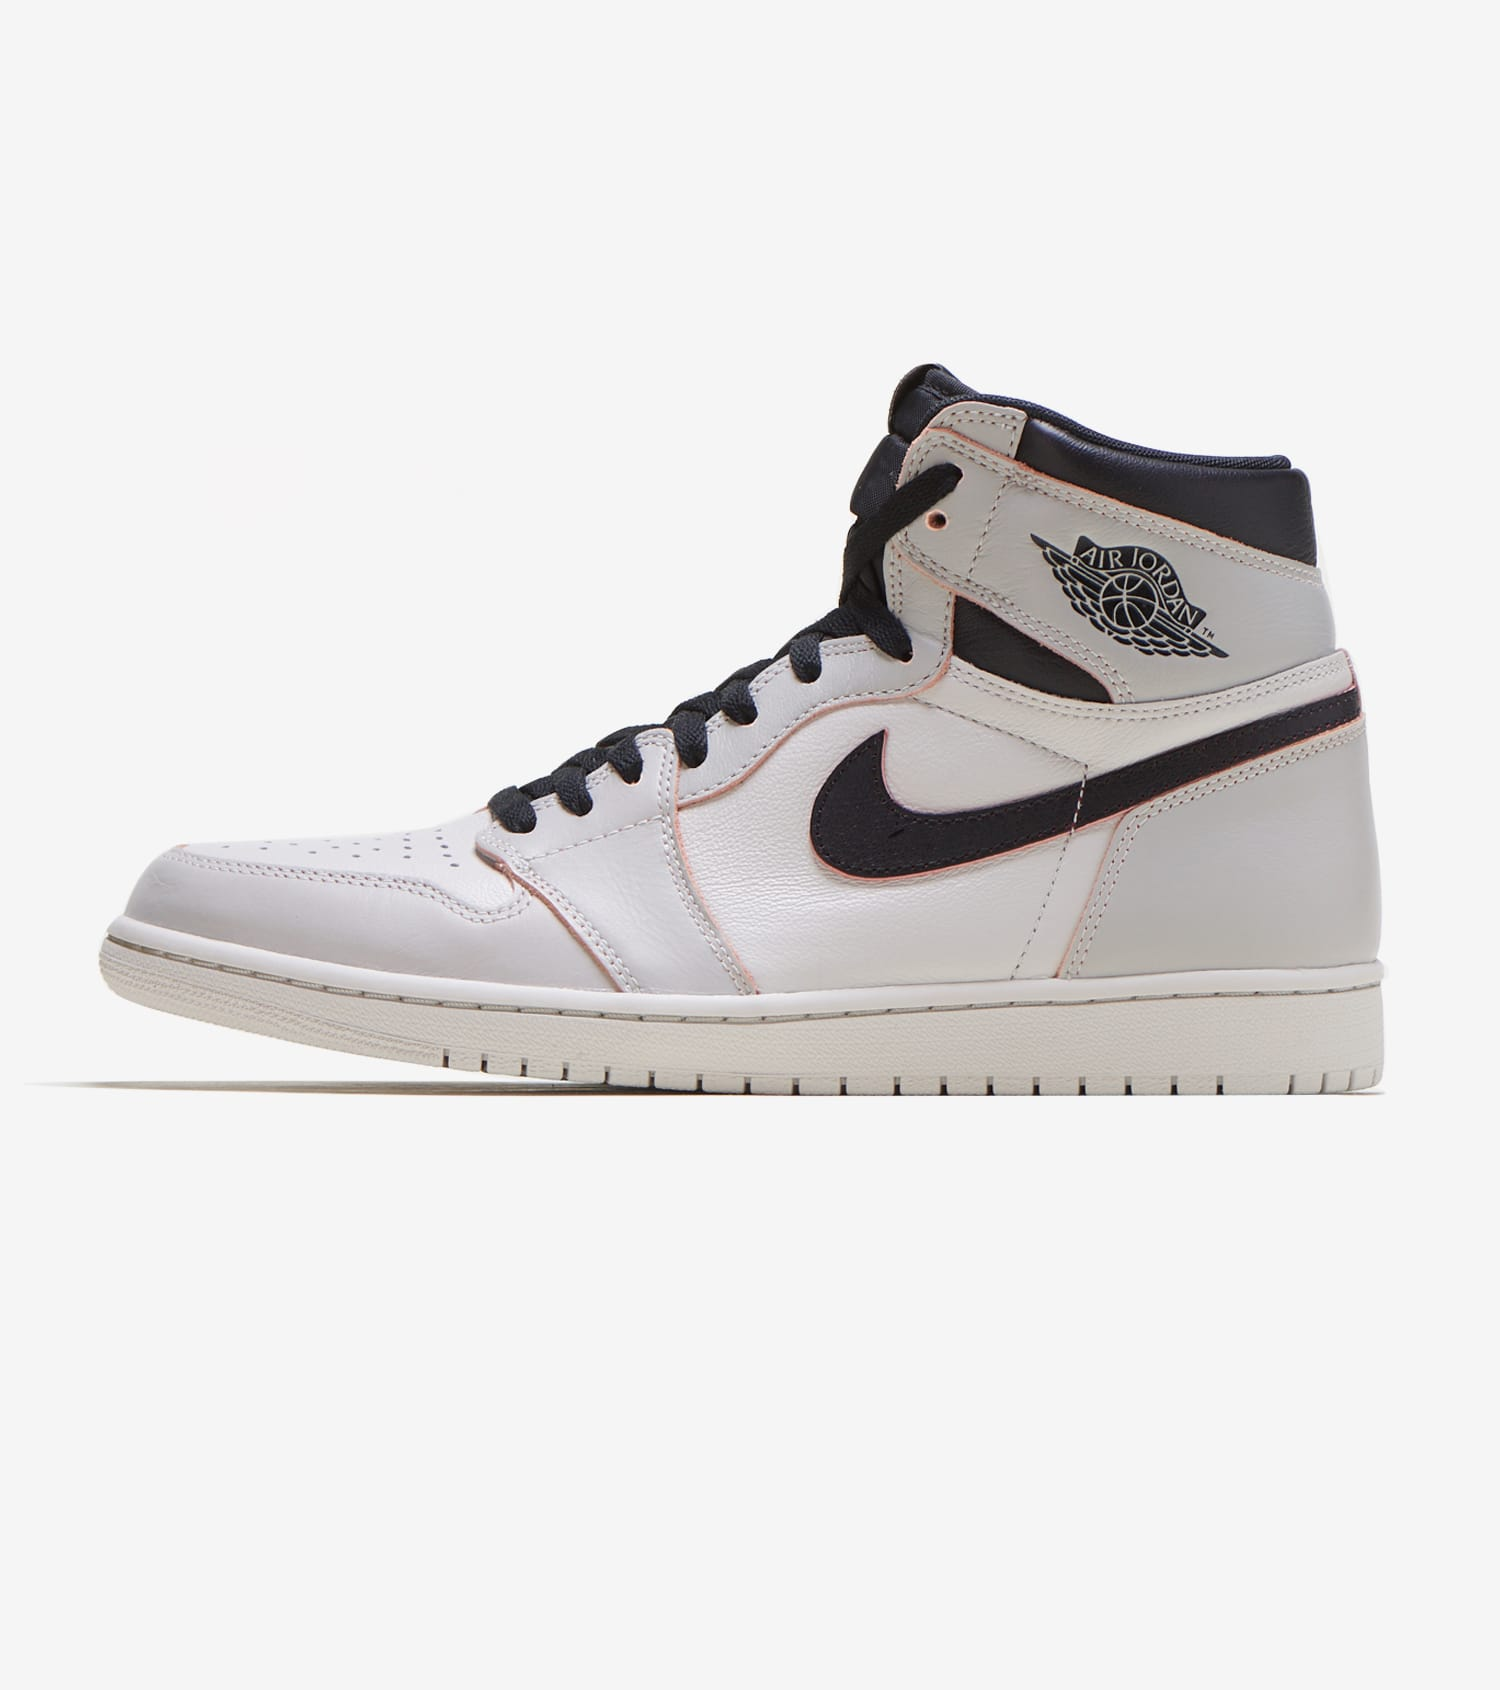 the best attitude 637b3 a60f6 Retro 1 High OG Defiant